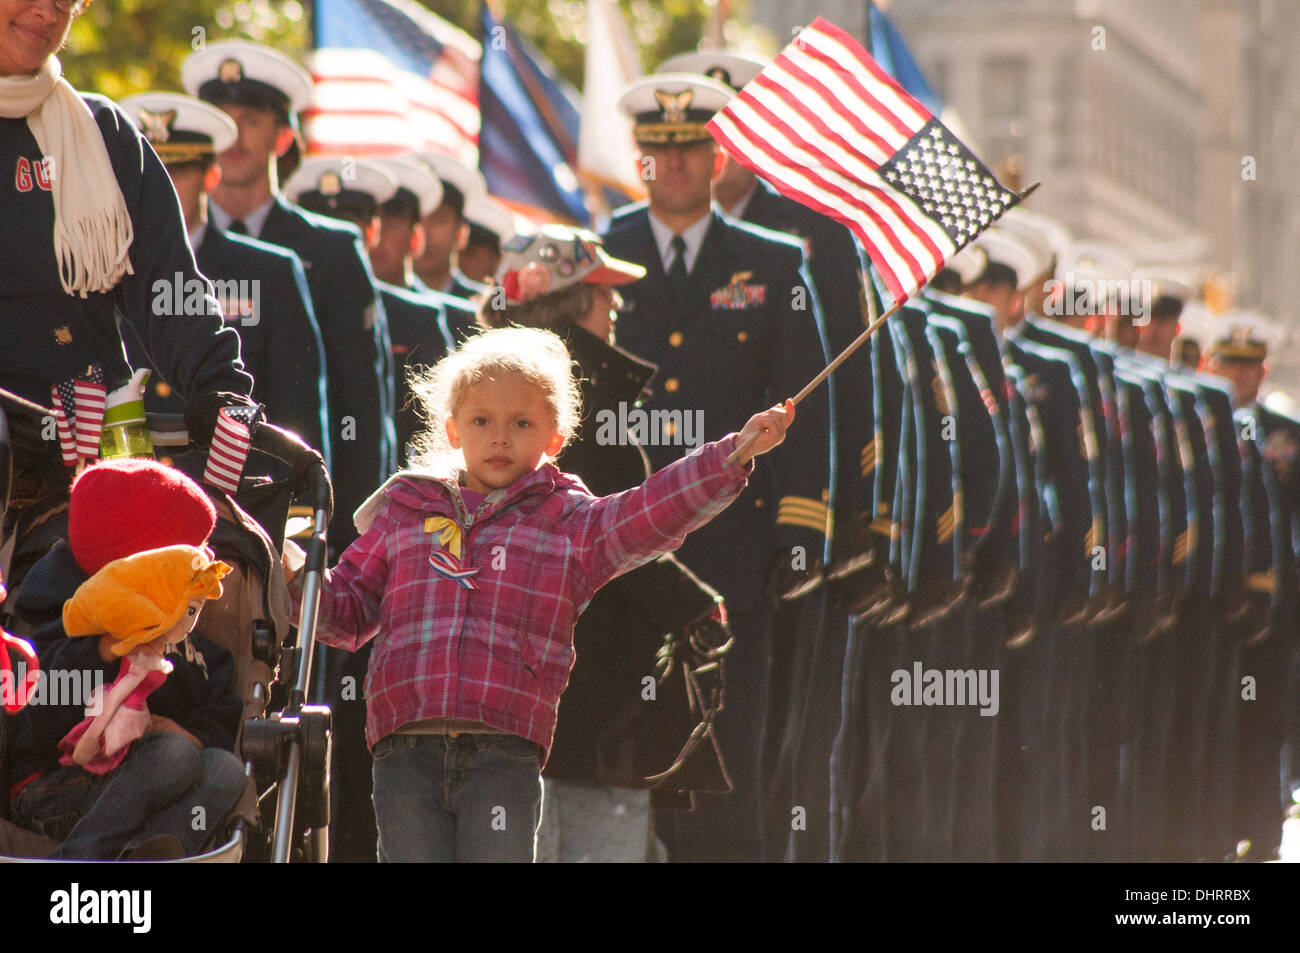 A child of a New York area Coast Guard service member waves the American Flag while marching in New York City's Veterans Day Parade, November 11, 2013. The Parade honors all eras and branches of military service, with special recognition given this year t - Stock Image